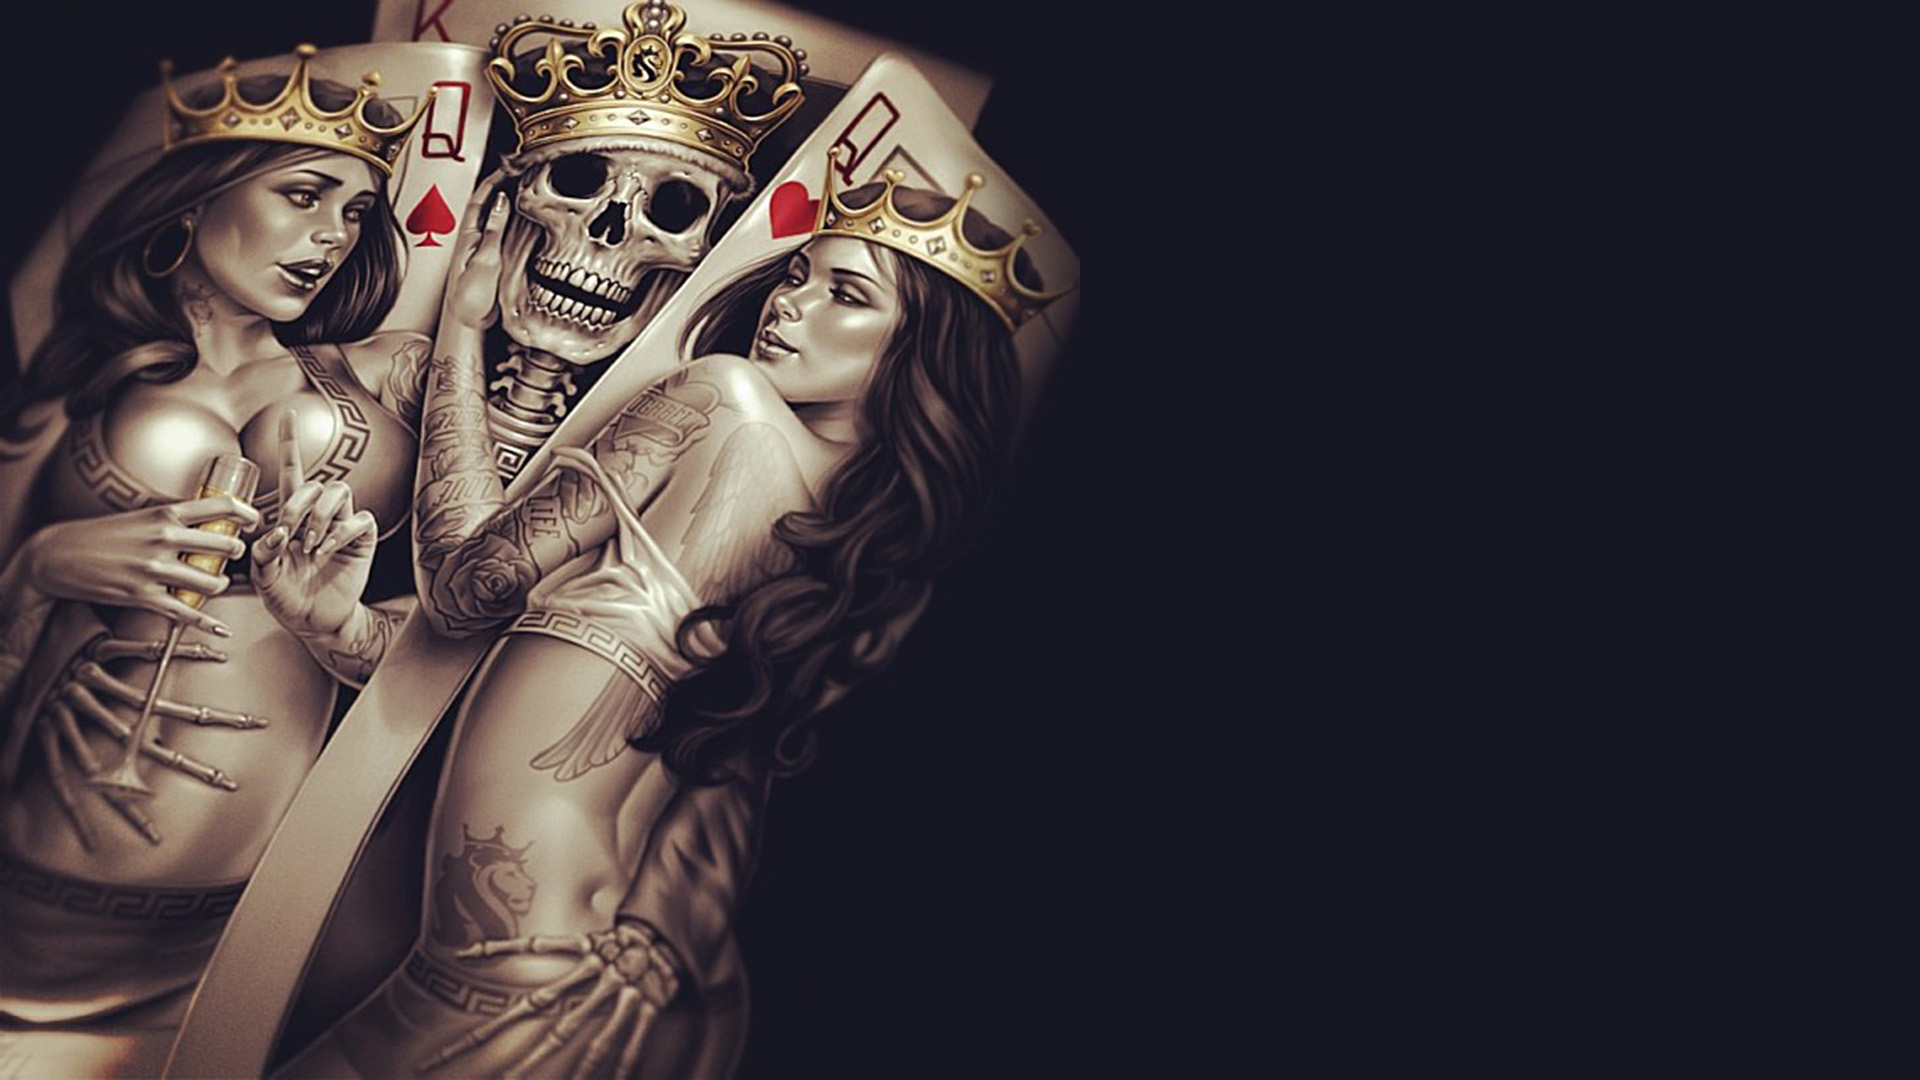 Skull Wallpapers Mobile Is Cool Wallpapers